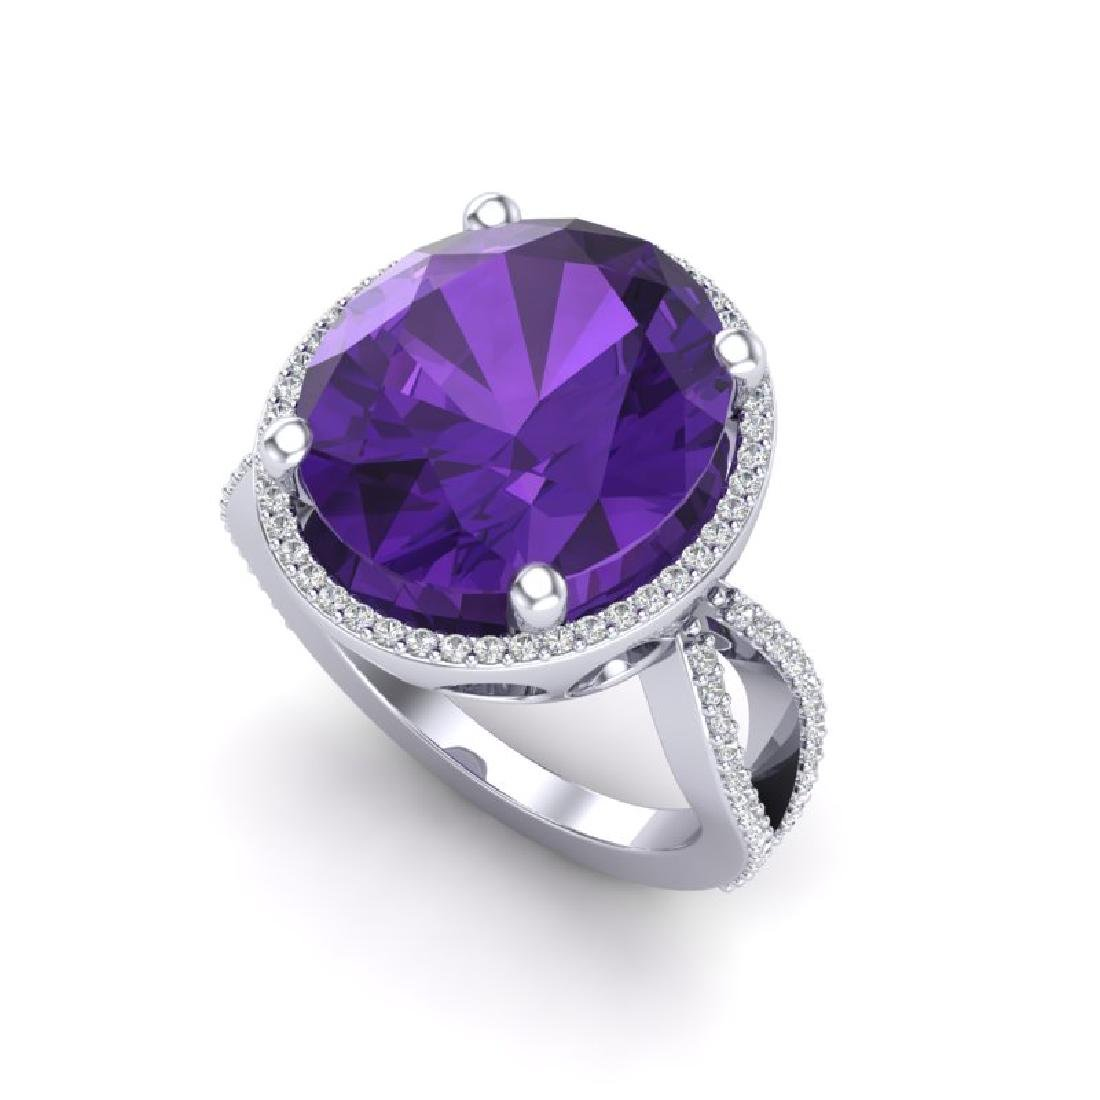 10 CTW Amethyst & Micro Pave VS/SI Diamond Halo Ring - 2